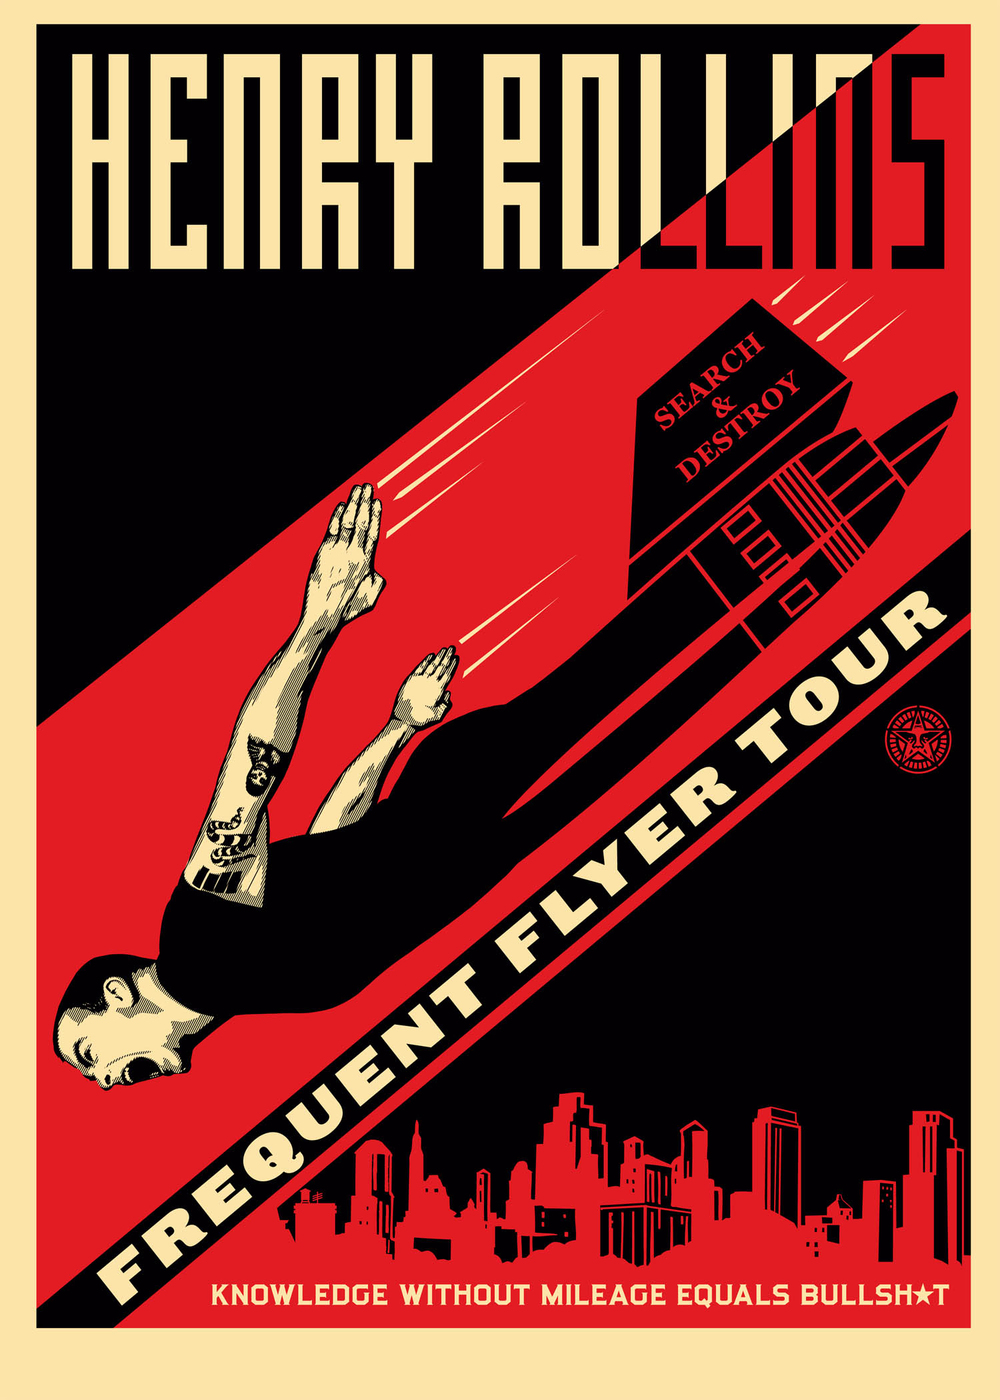 Henry+Rollins+Frequent+Flyer+Tour+272736Henry_Rollins_2010_tour-2.jpg